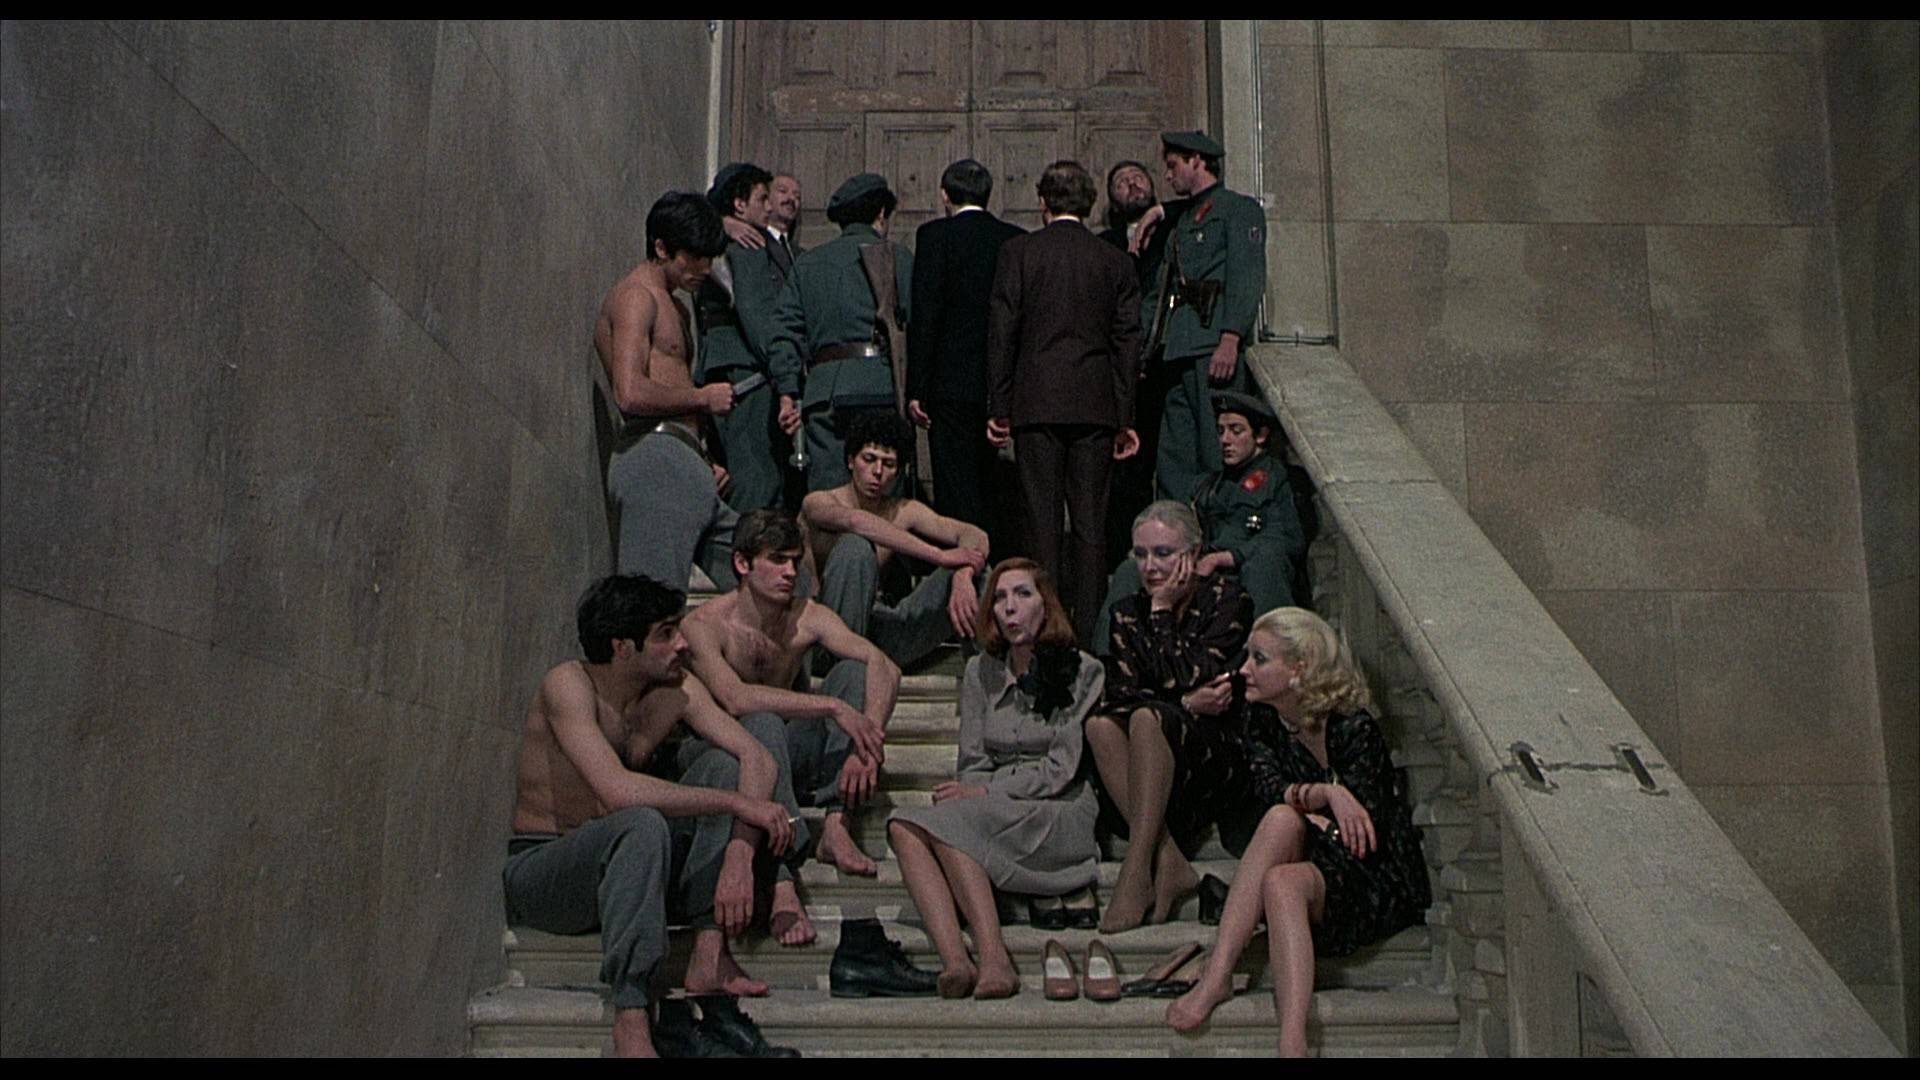 Salo o le 120 giornate di Sodoma / Salo, or the 120 Days of Sodom (1975) [Criterion Collection]